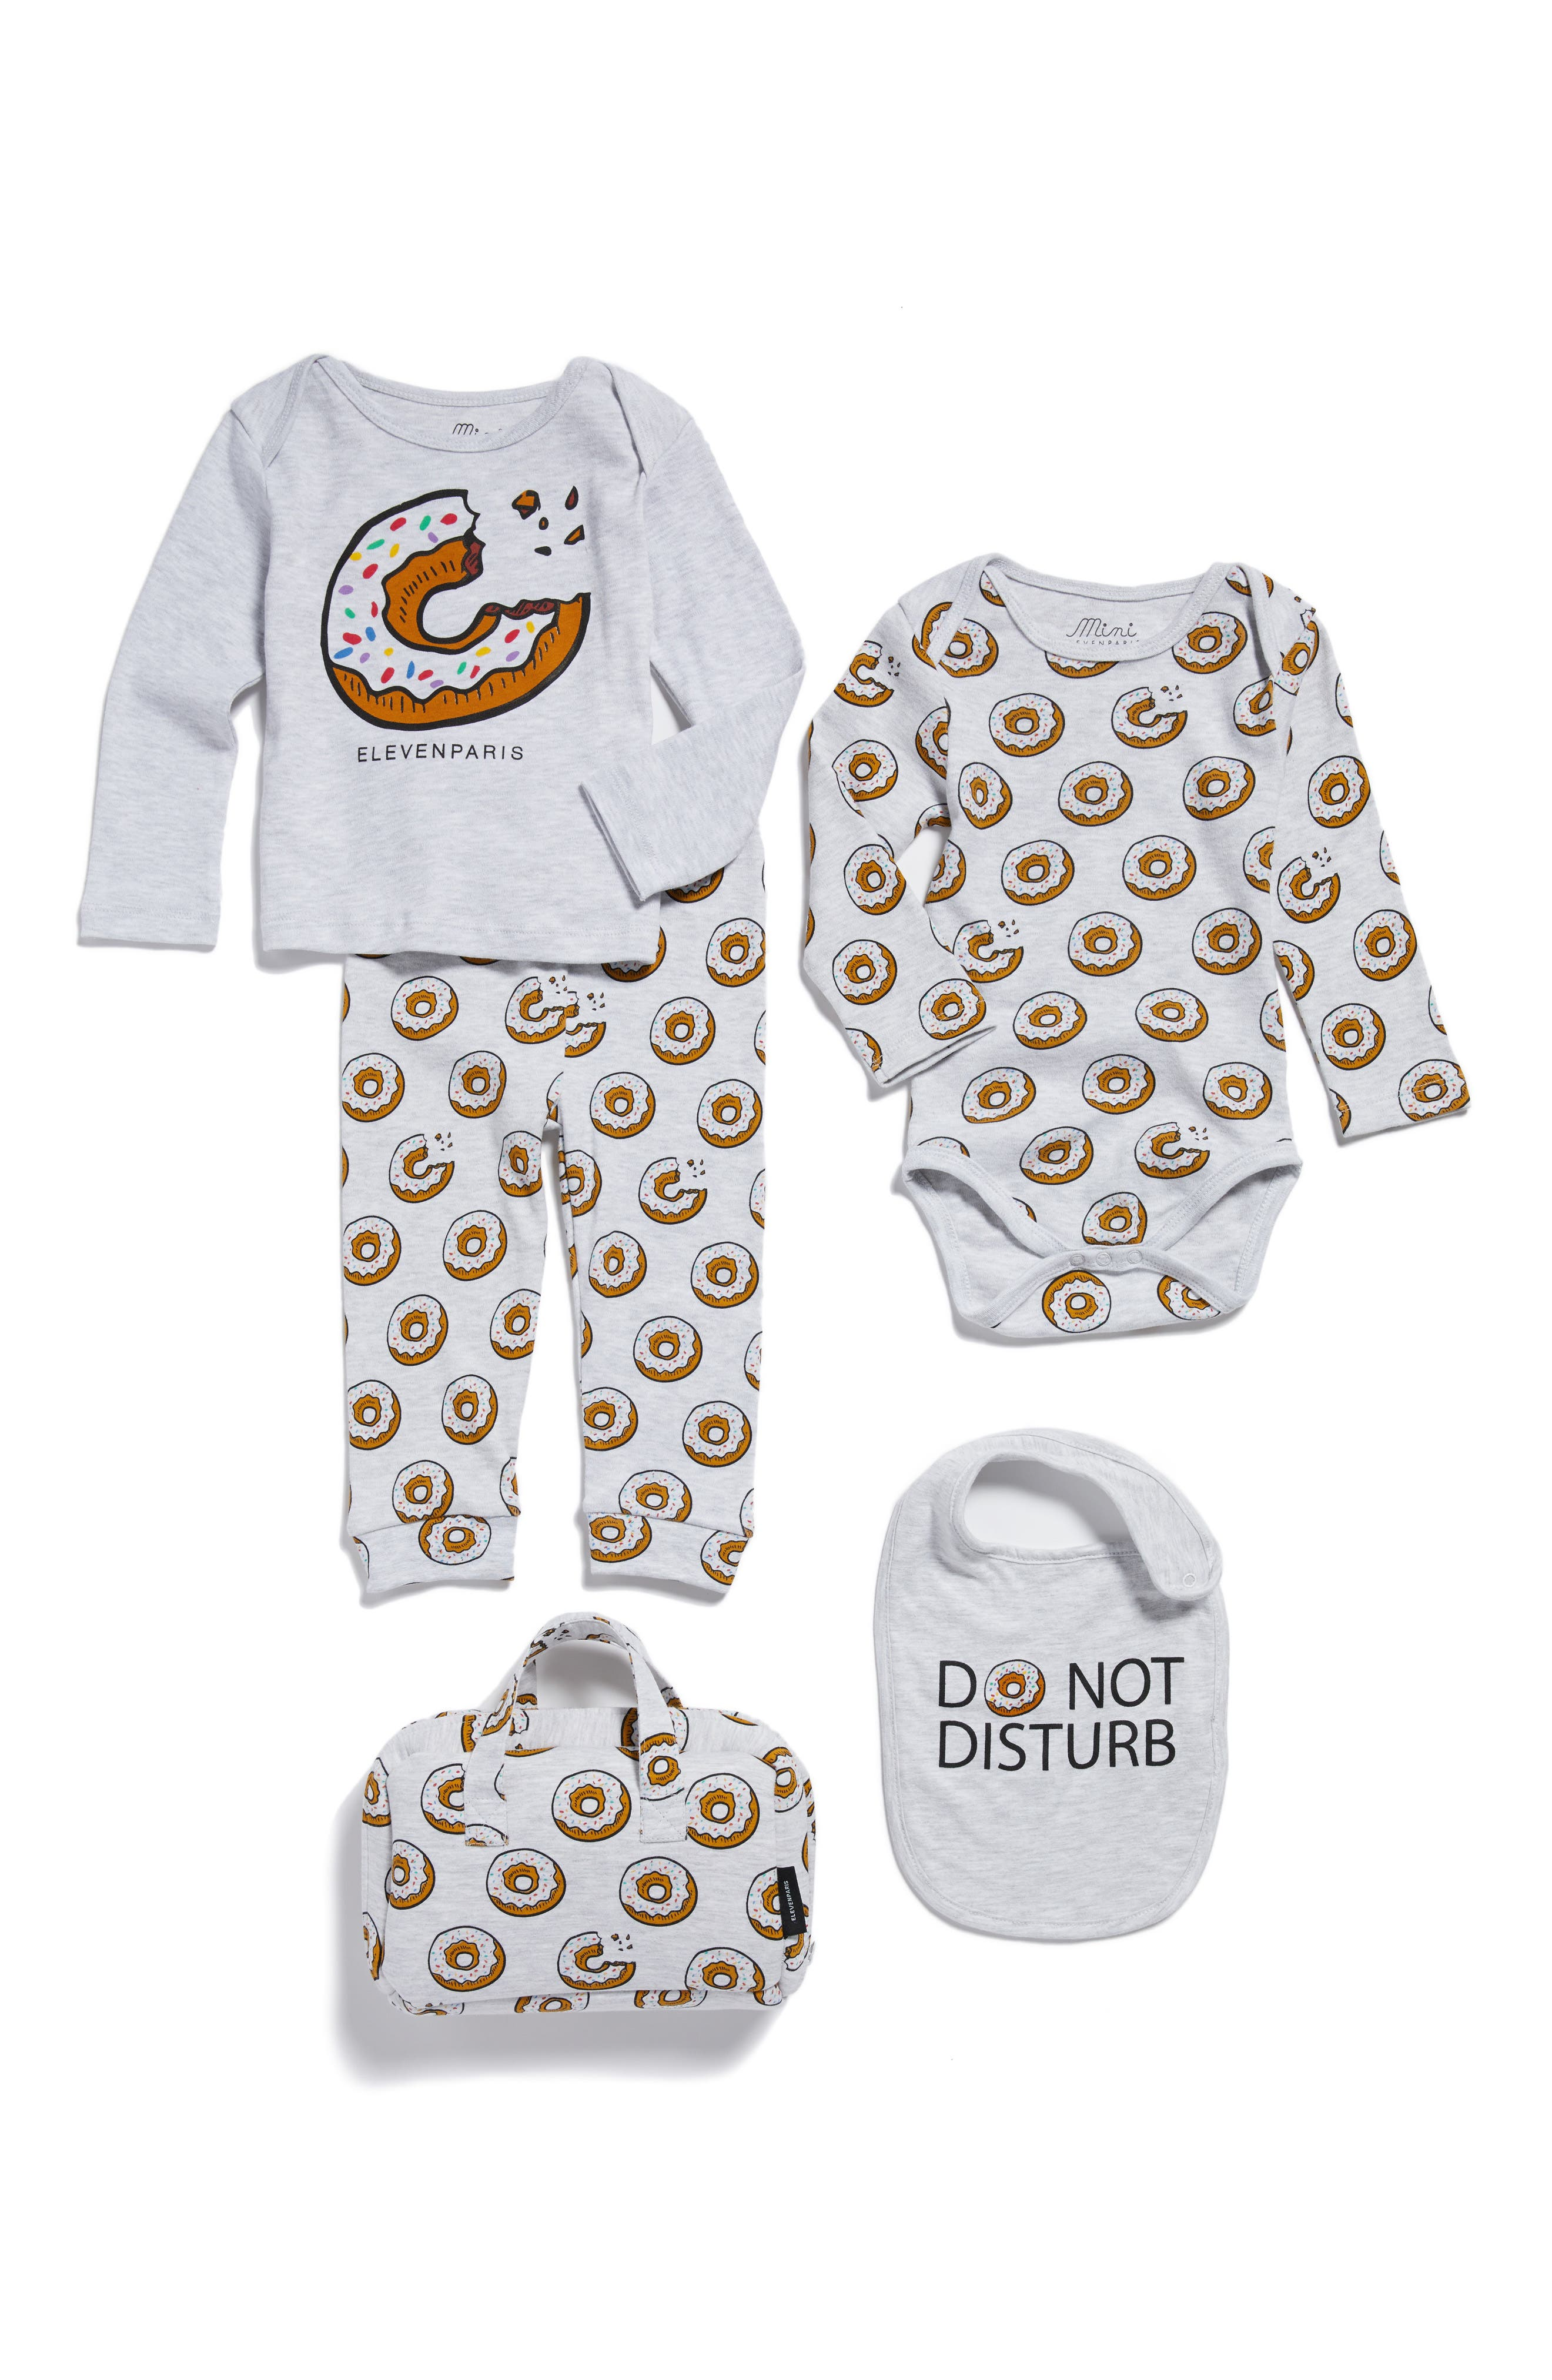 Main Image - Little ELEVENPARIS Donut Print Tee, Pants, Bodysuit & Bib Set (Baby Girls)